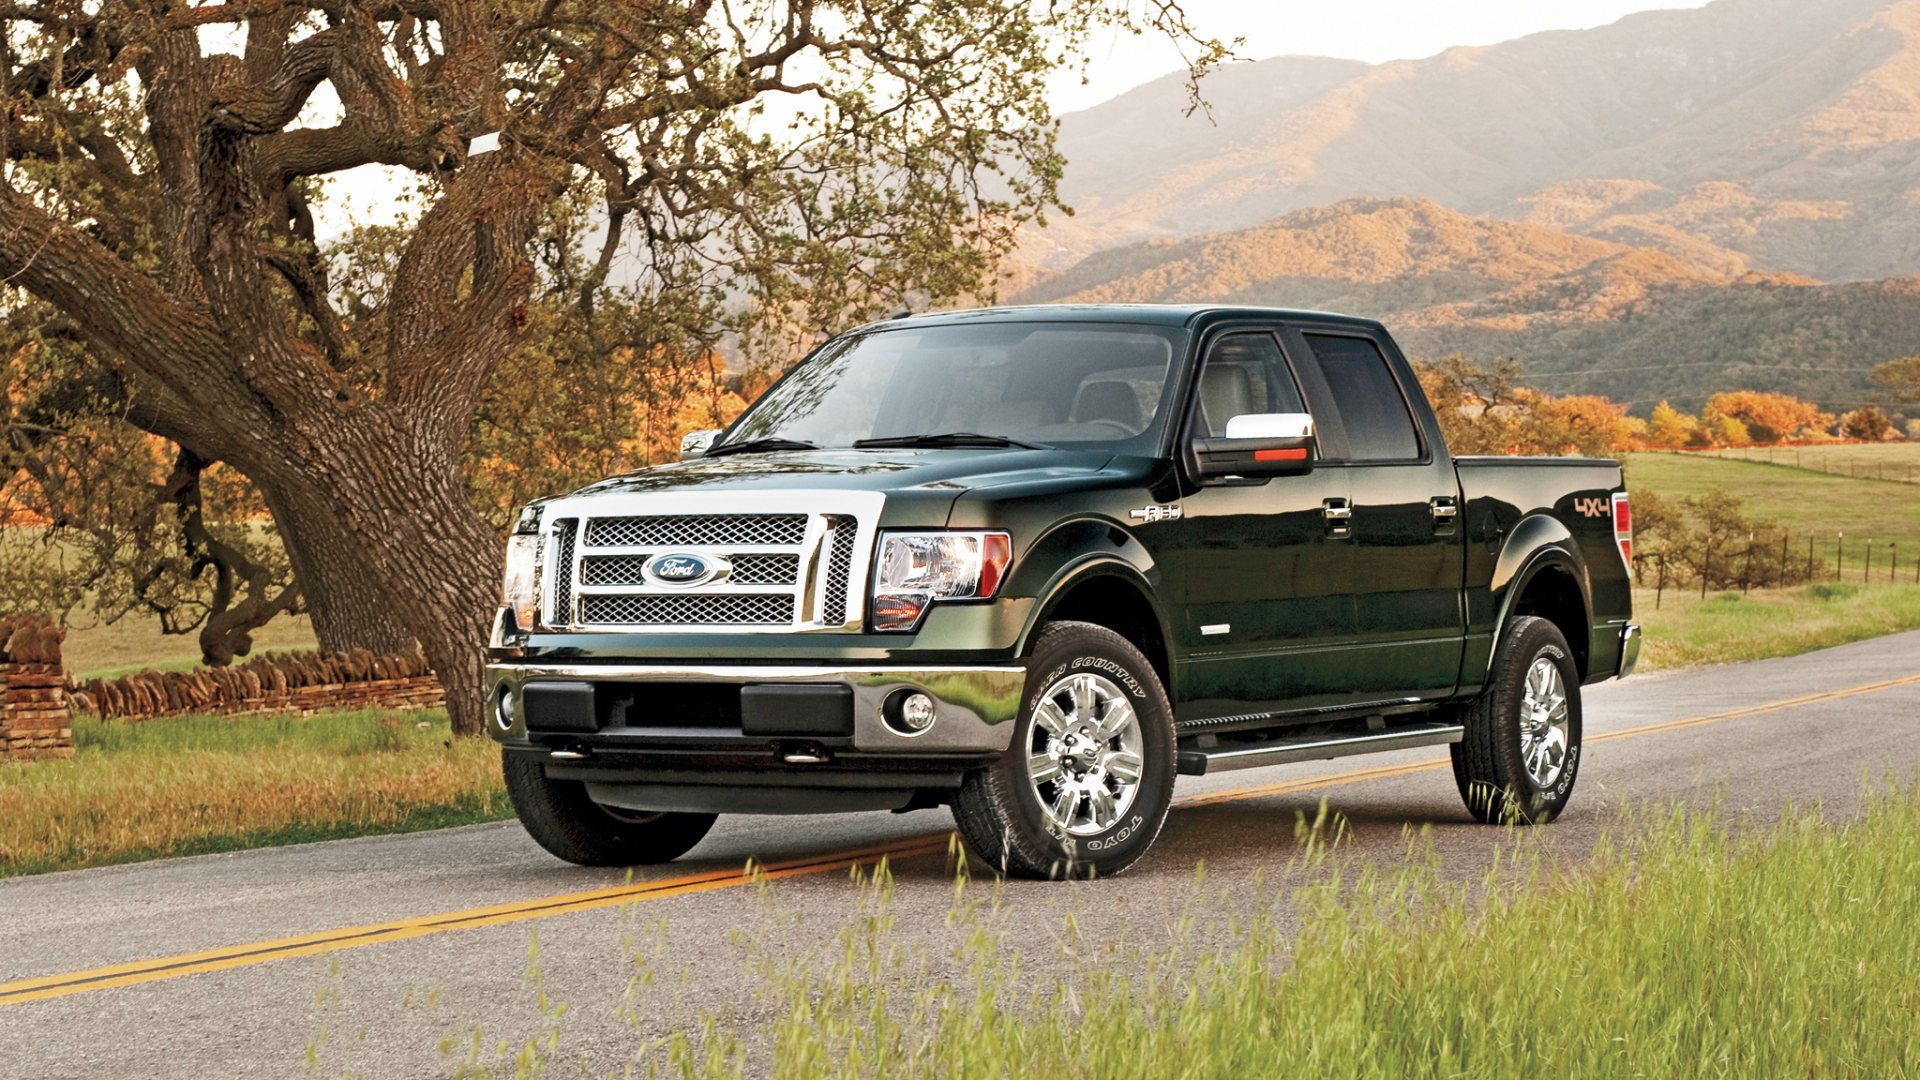 Ford F 150 Pickup Truck HD Desktop Backgrounds Photos Wallpapers 1920x1080